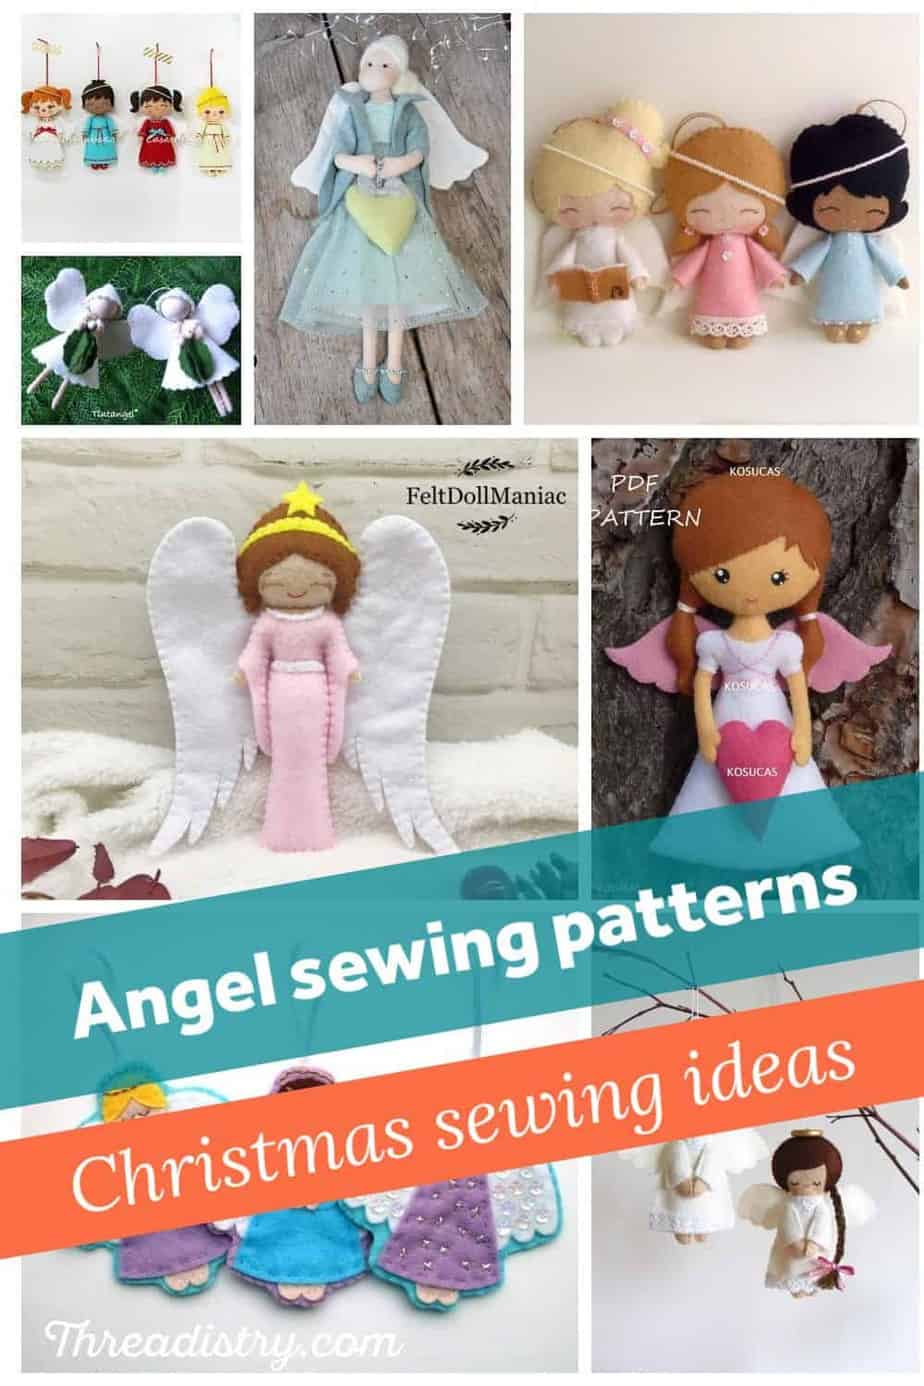 """Collage of handmade angels with text overlay """"Angel sewing patterns"""" and """"Christmas sewing ideas""""."""